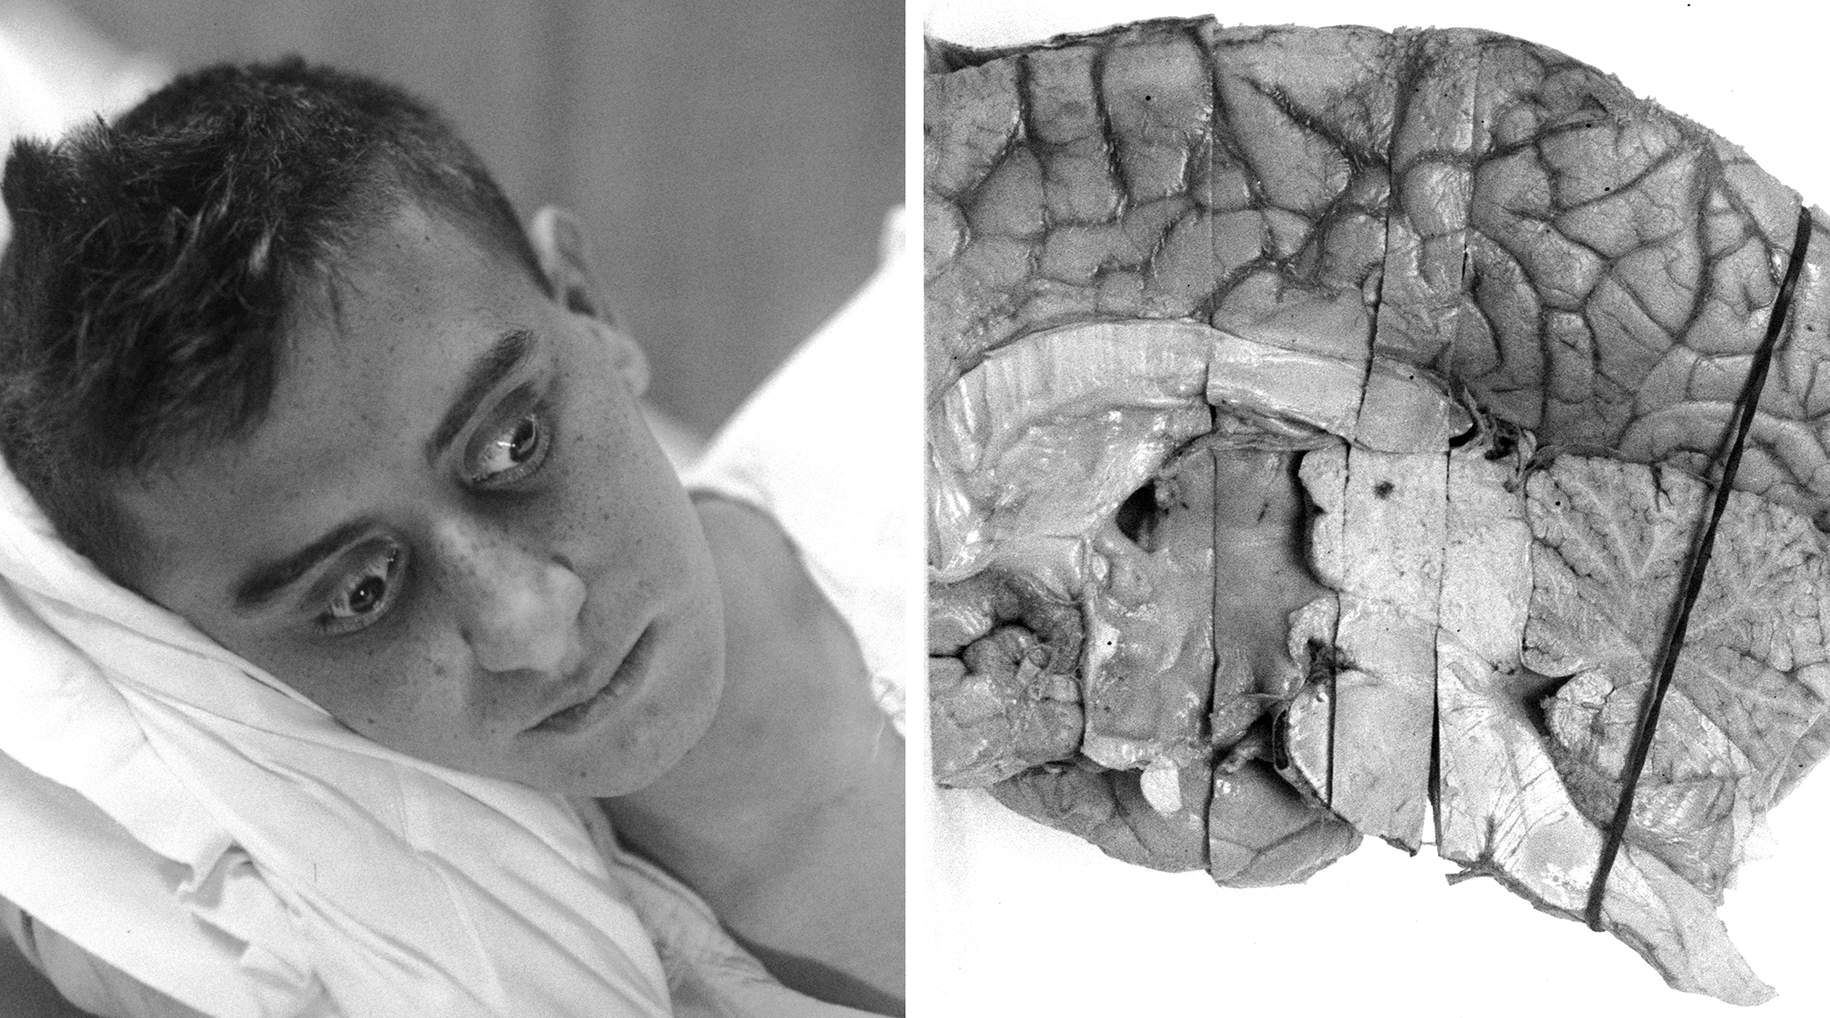 Figure 1: The man in this photograph, a patient of Harvey Cushing's, suffered from Parinaud's syndrome and died before a diagnosis and tumor localization was made. The autopsy specimen (right photo) demonstrates a tumor located in the pineal region (images courtesy of Cushing Brain Tumor Registry at Yale University).